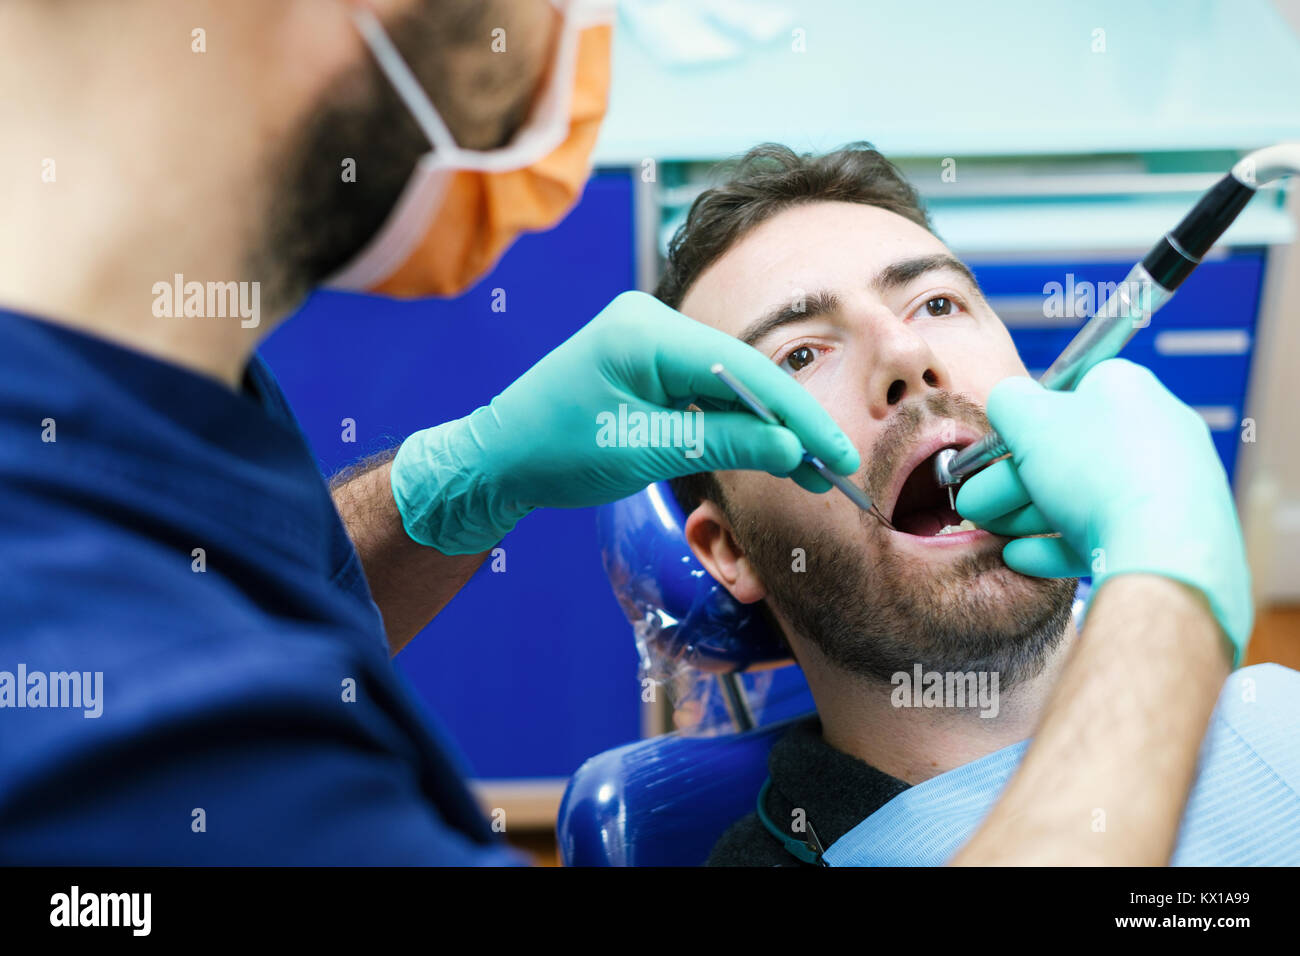 Dentist examining patient's teeth in clinic - Stock Image